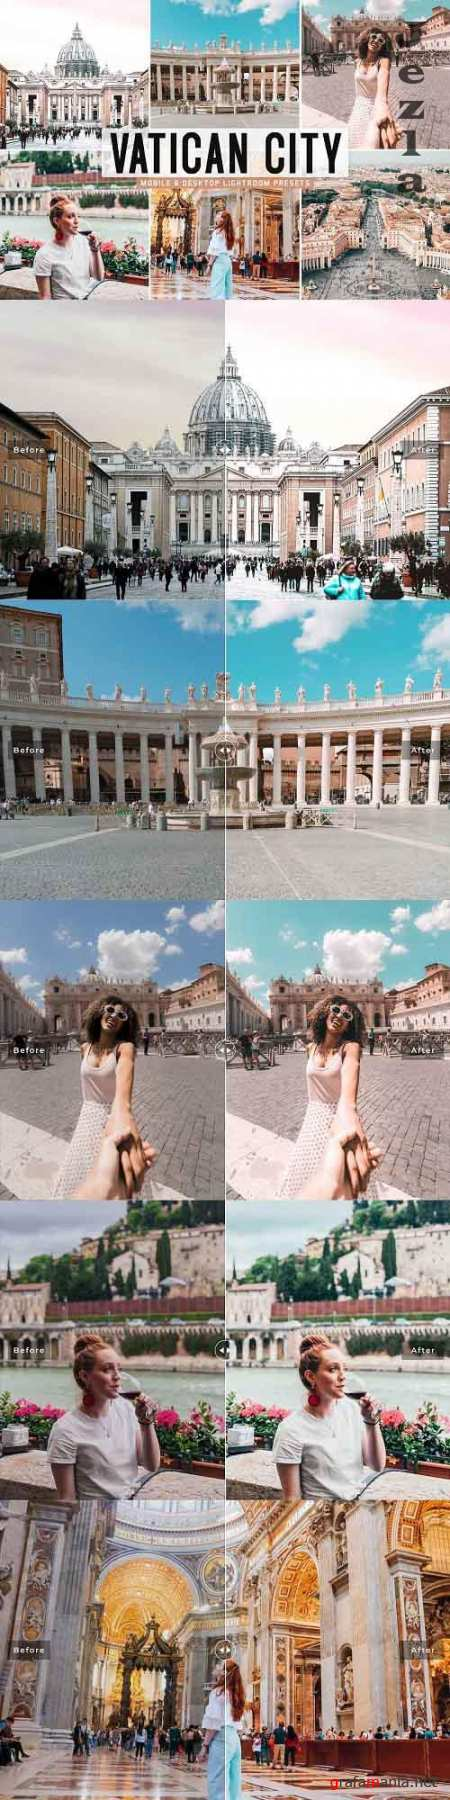 Vatican City Pro Lightroom Presets - 5918608